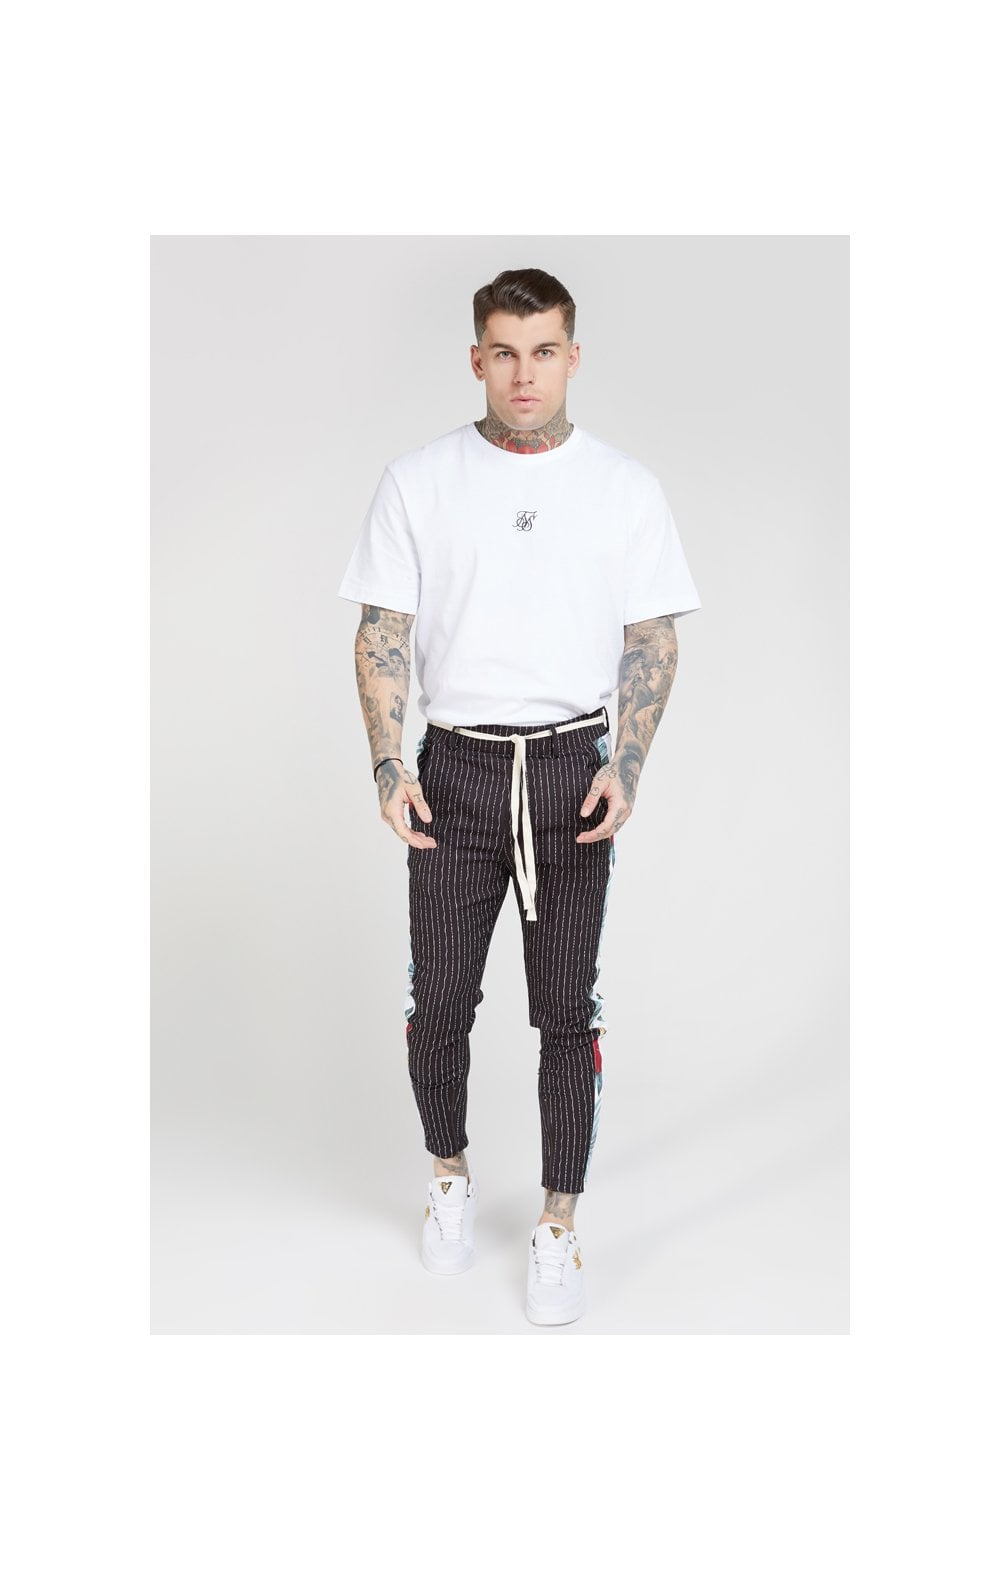 SikSilk Pleated Drop Crotch Tape Pants – Navy Pin Stripe (2)